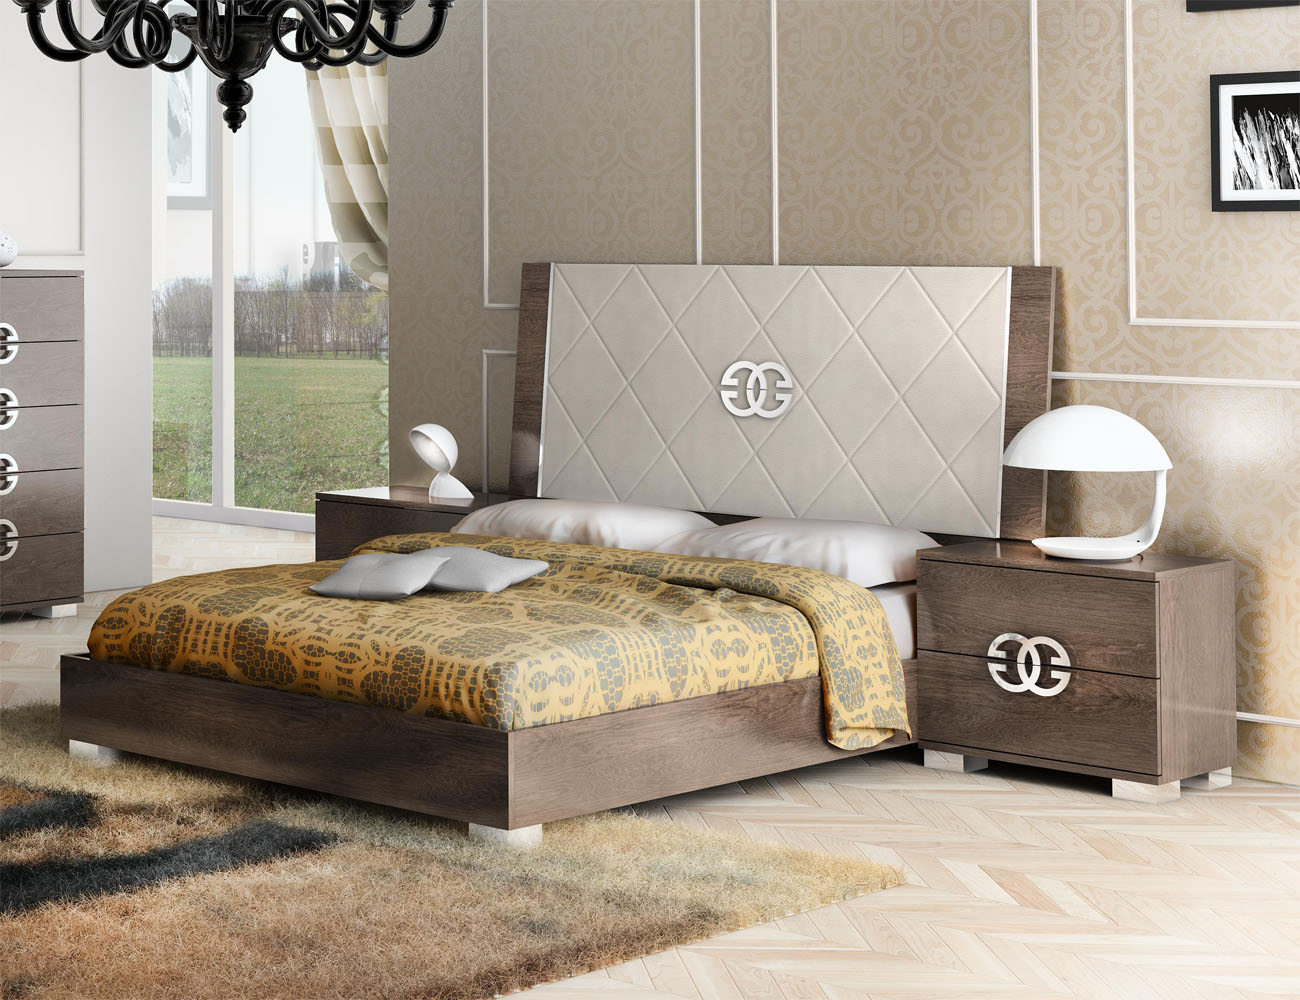 unique leather high end platform bed birmingham alabama esfpre. Black Bedroom Furniture Sets. Home Design Ideas